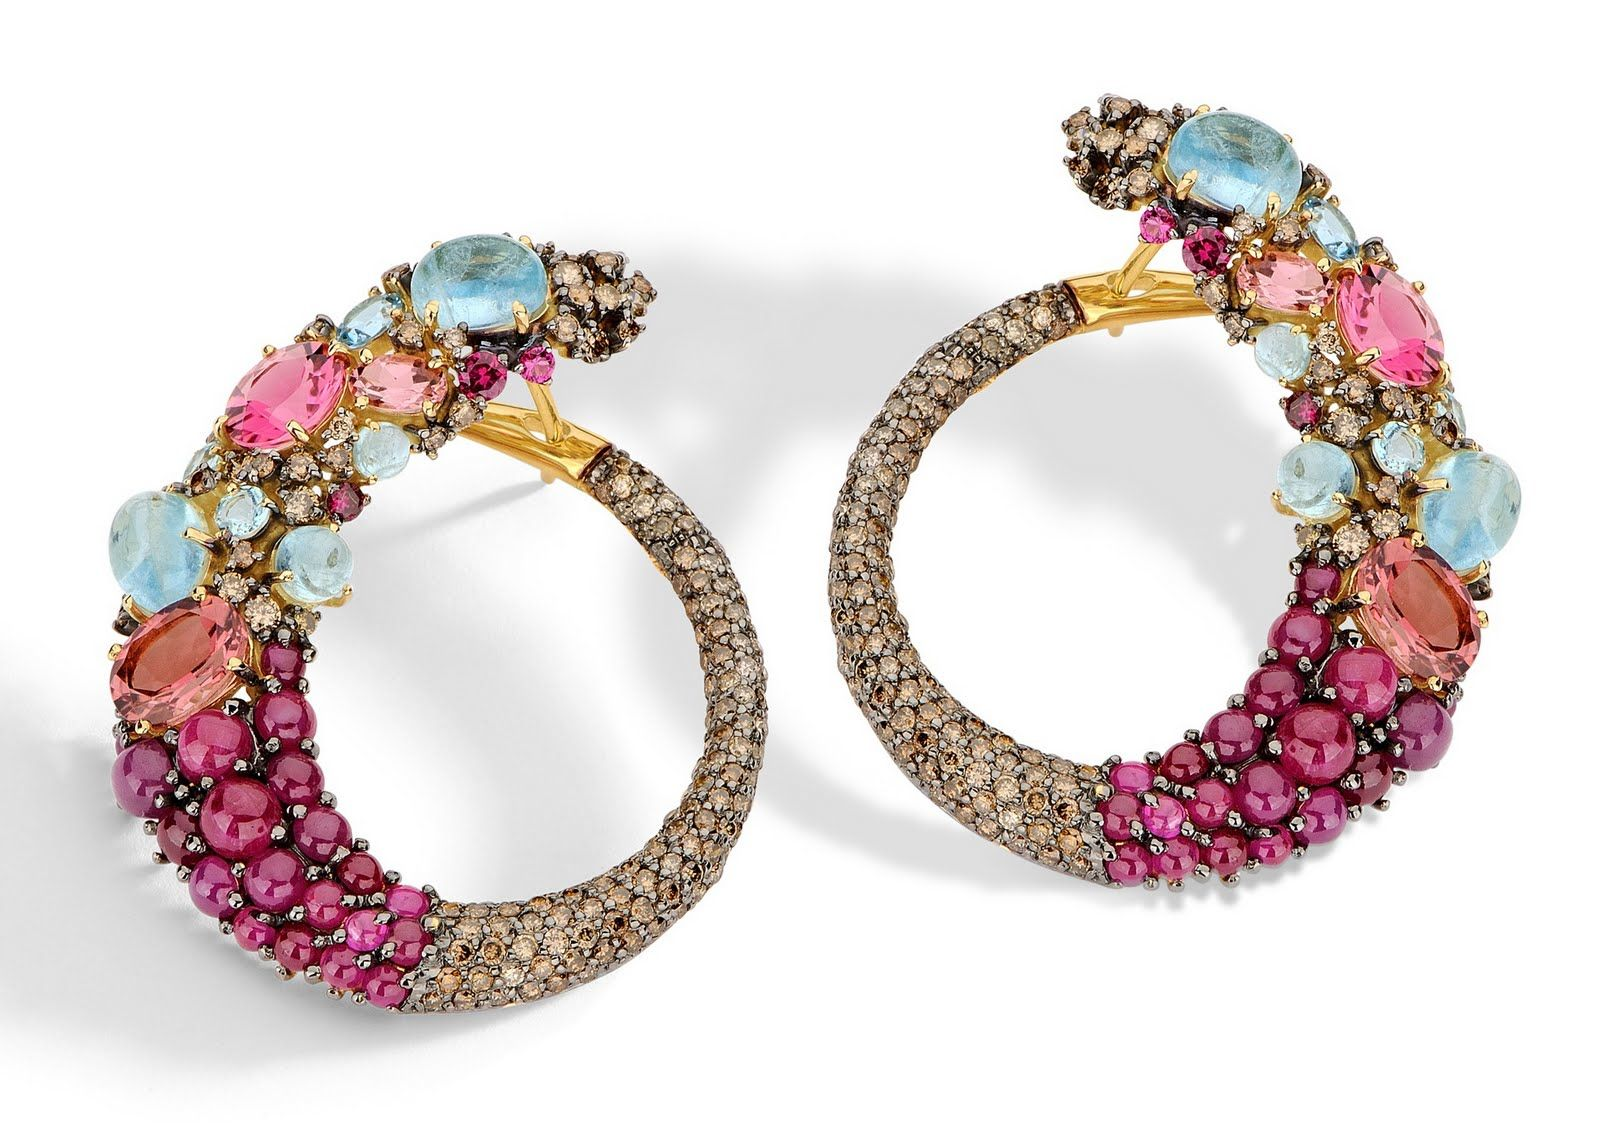 Jewelry Gifts that Will Make the Holidays Sparkle Pink tourmaline